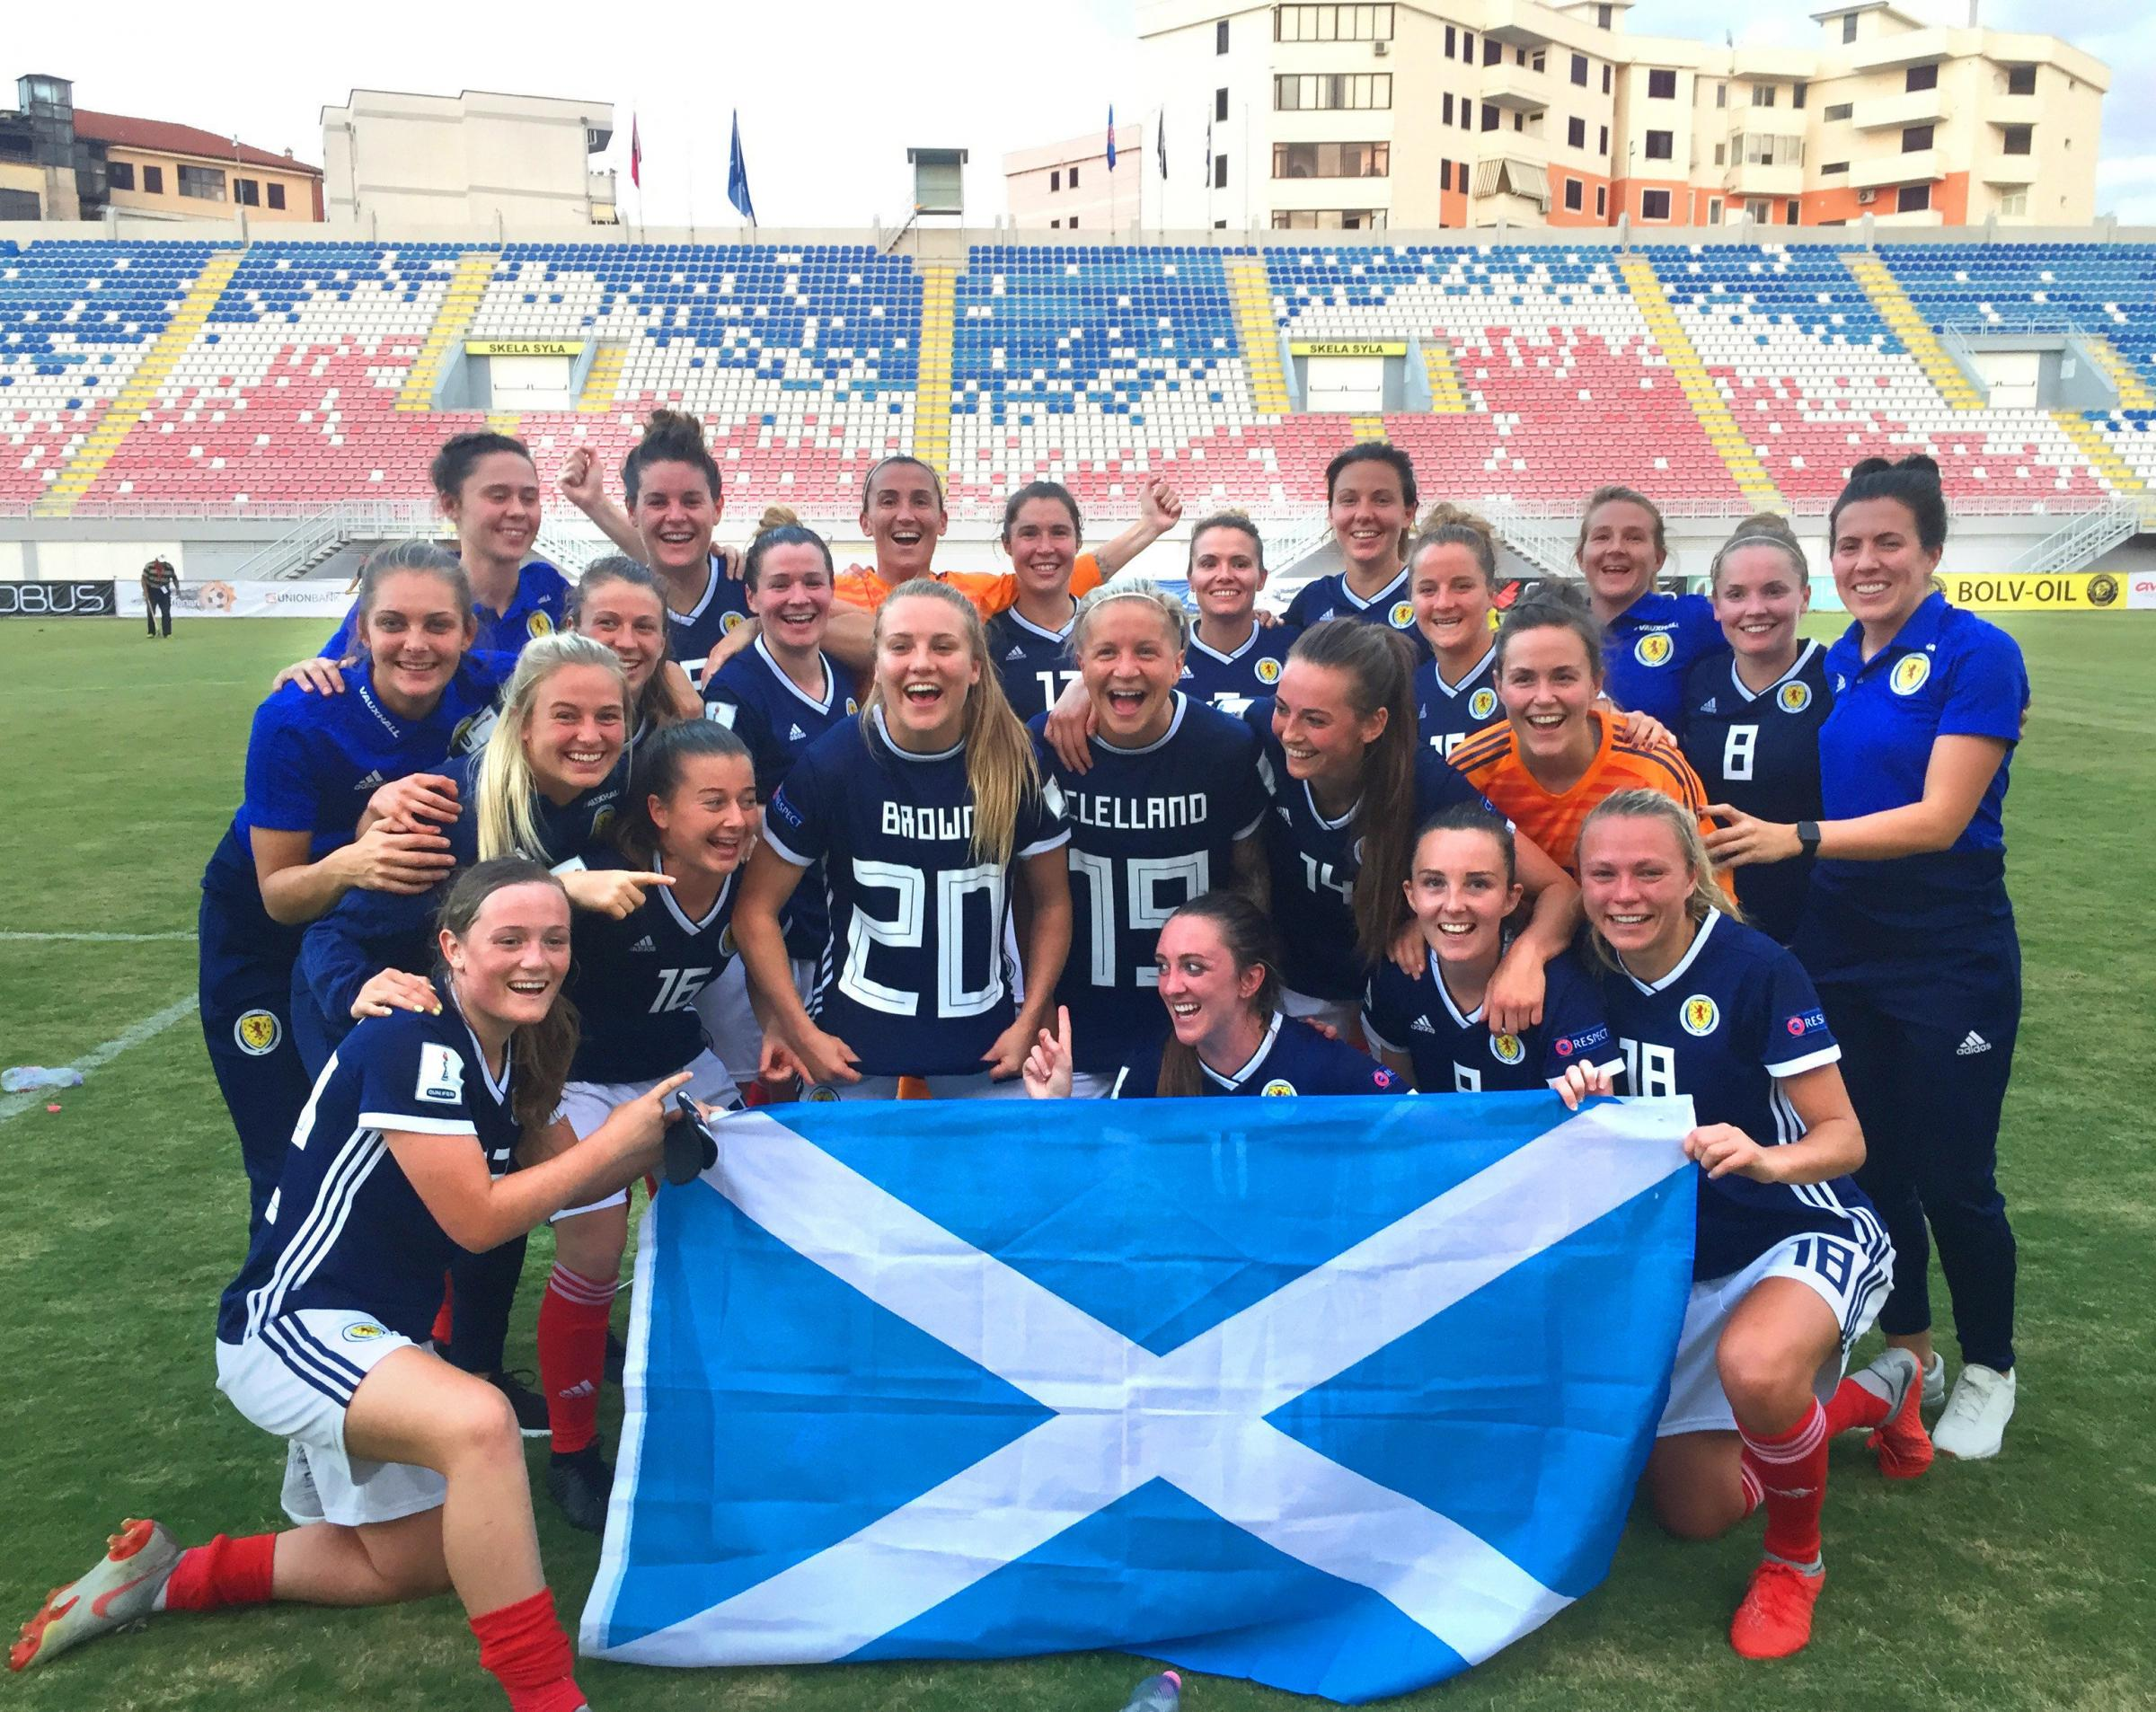 Scotland's women's team qualified for the World Cup on Tuesday